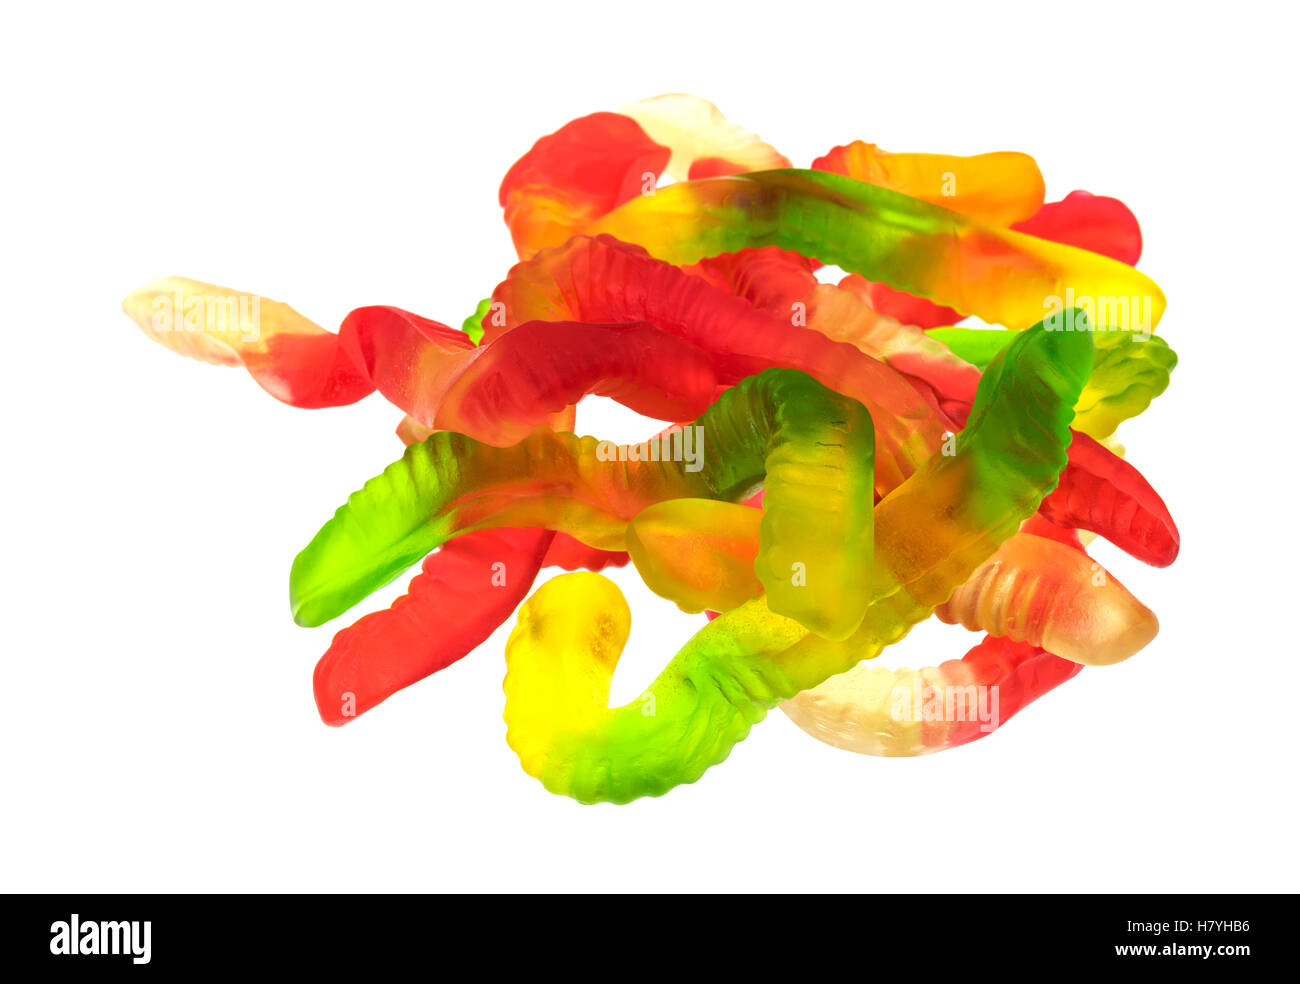 A group of colorful gummy worms isolated on a white background. - Stock Image